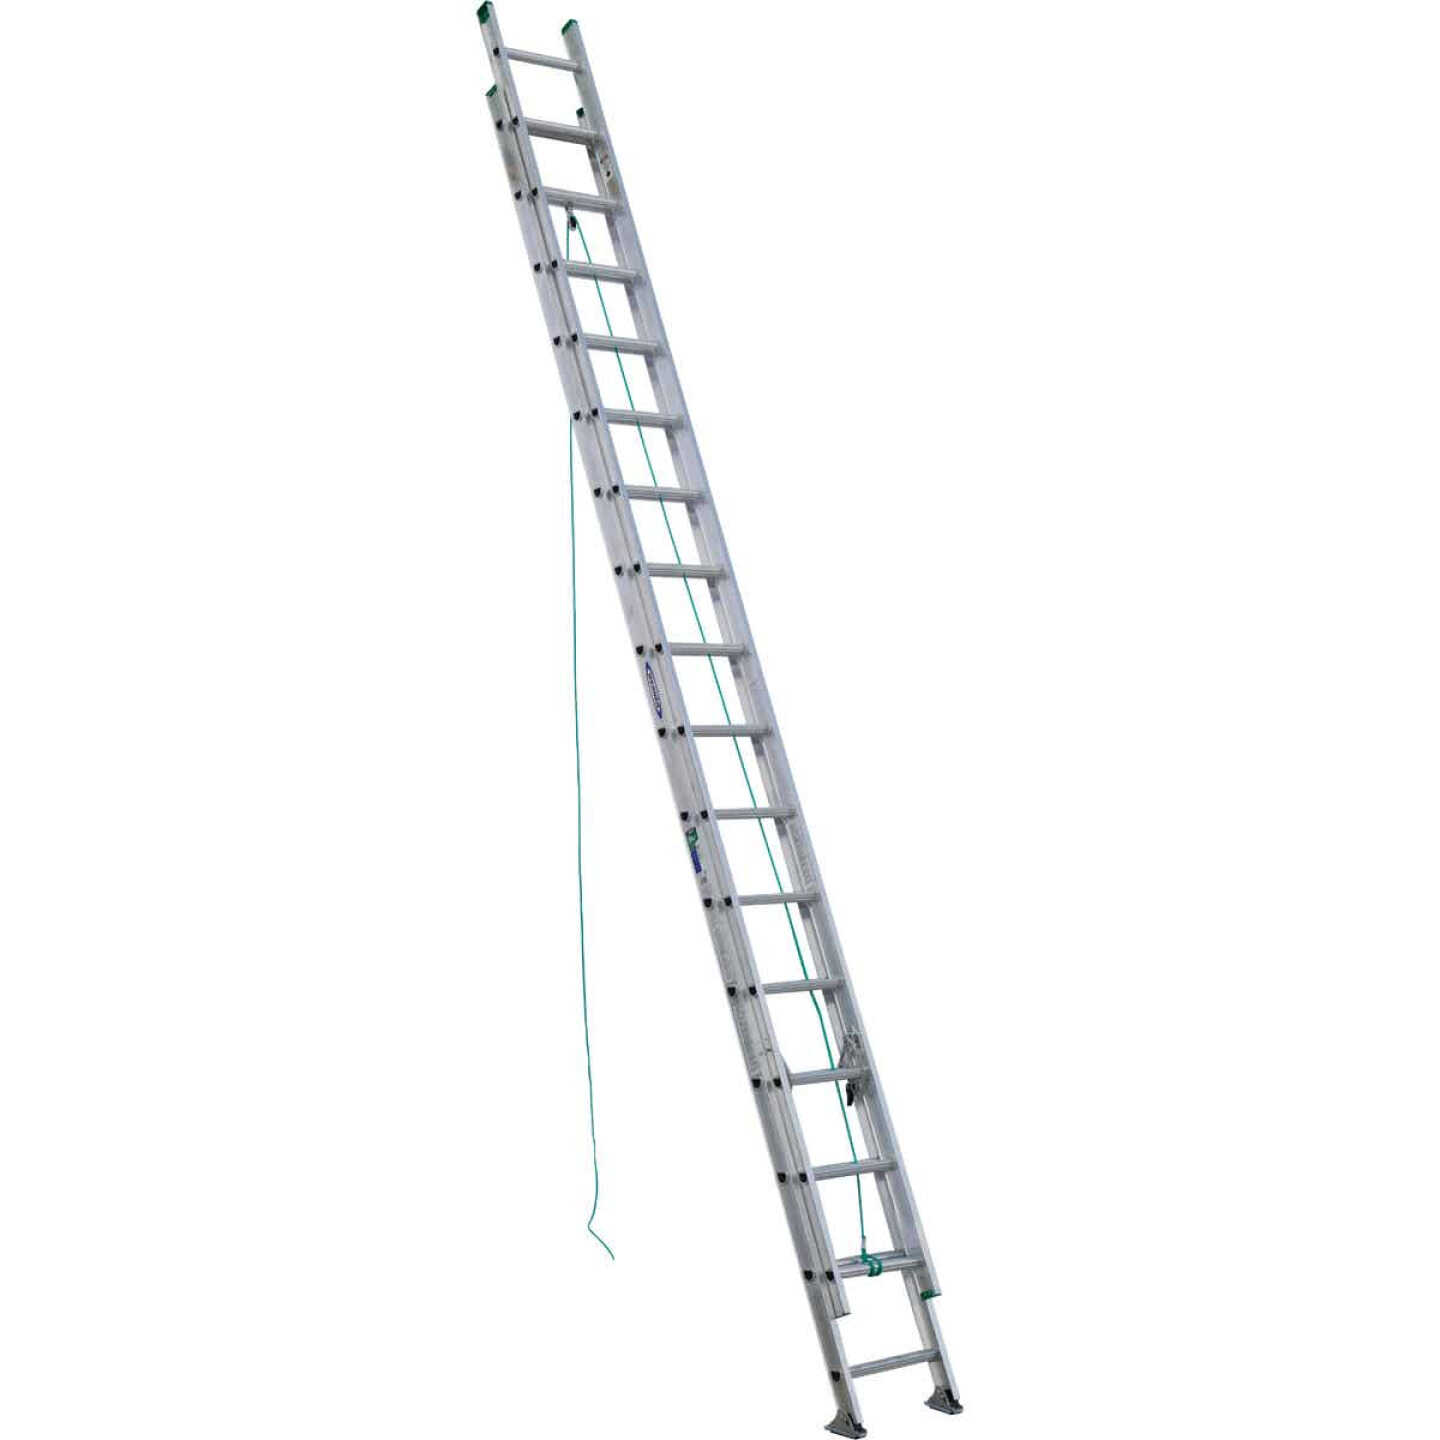 Werner 32 Ft. Aluminum Extension Ladder with 225 Lb. Load Capacity Type II Duty Rating Image 1